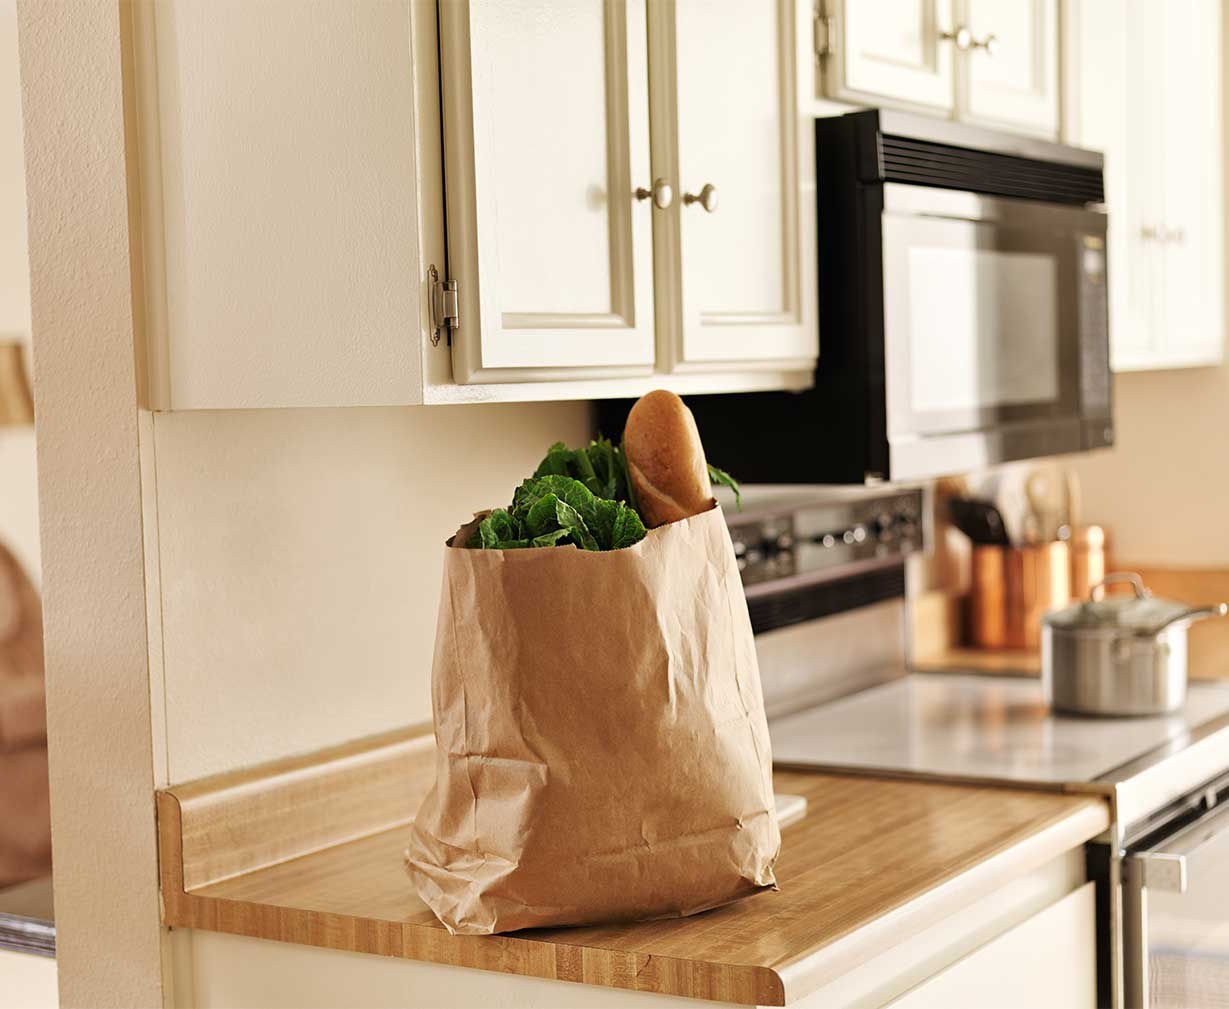 Pre-order your groceries with MnK